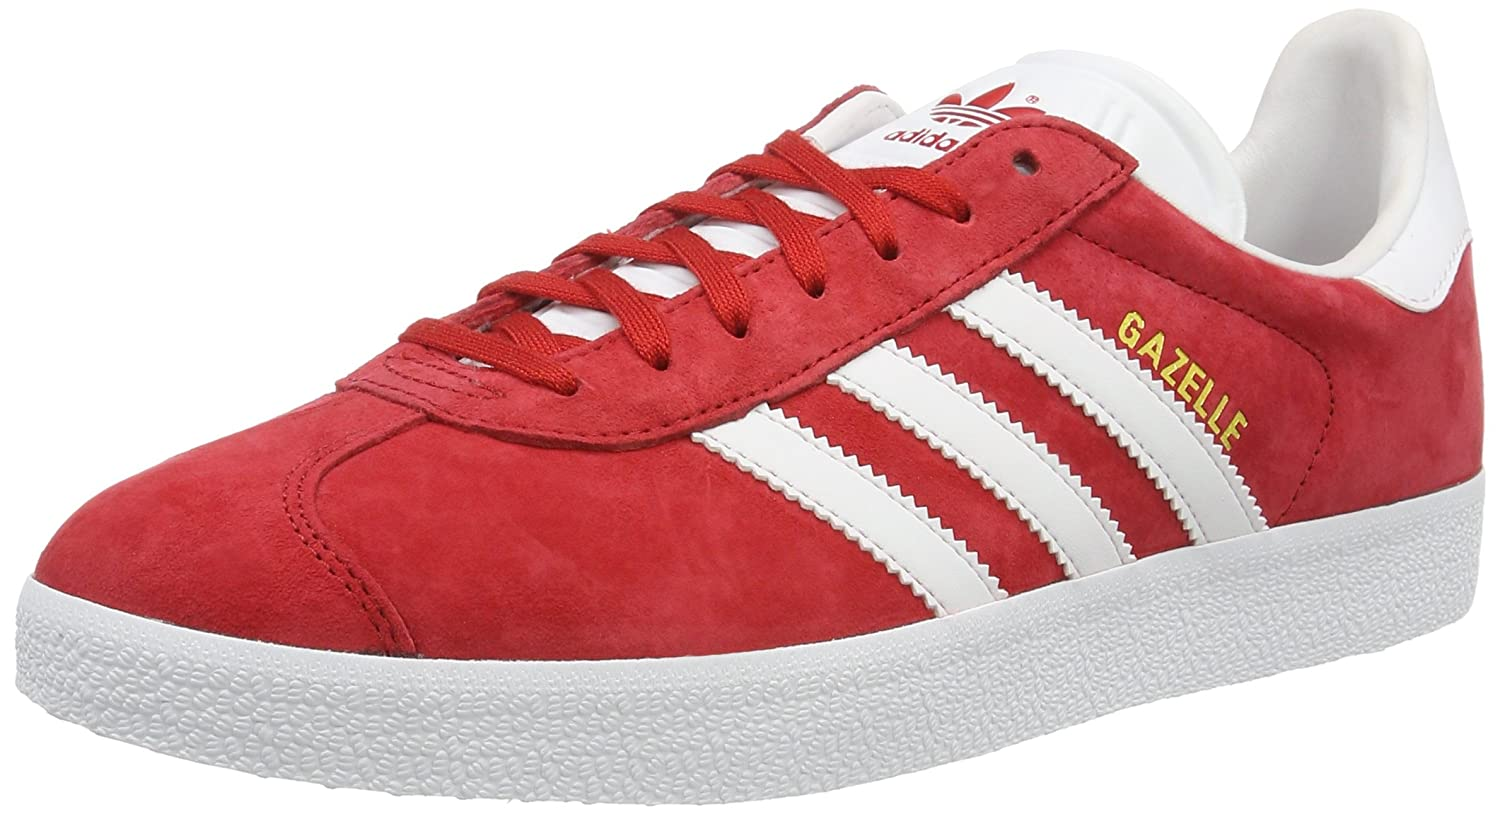 Adidas Originals Gazelle, Zapatillas de Deporte Unisex Adulto 43 1/3 EU|Rojo (Power Red/White/Gold Metallic)